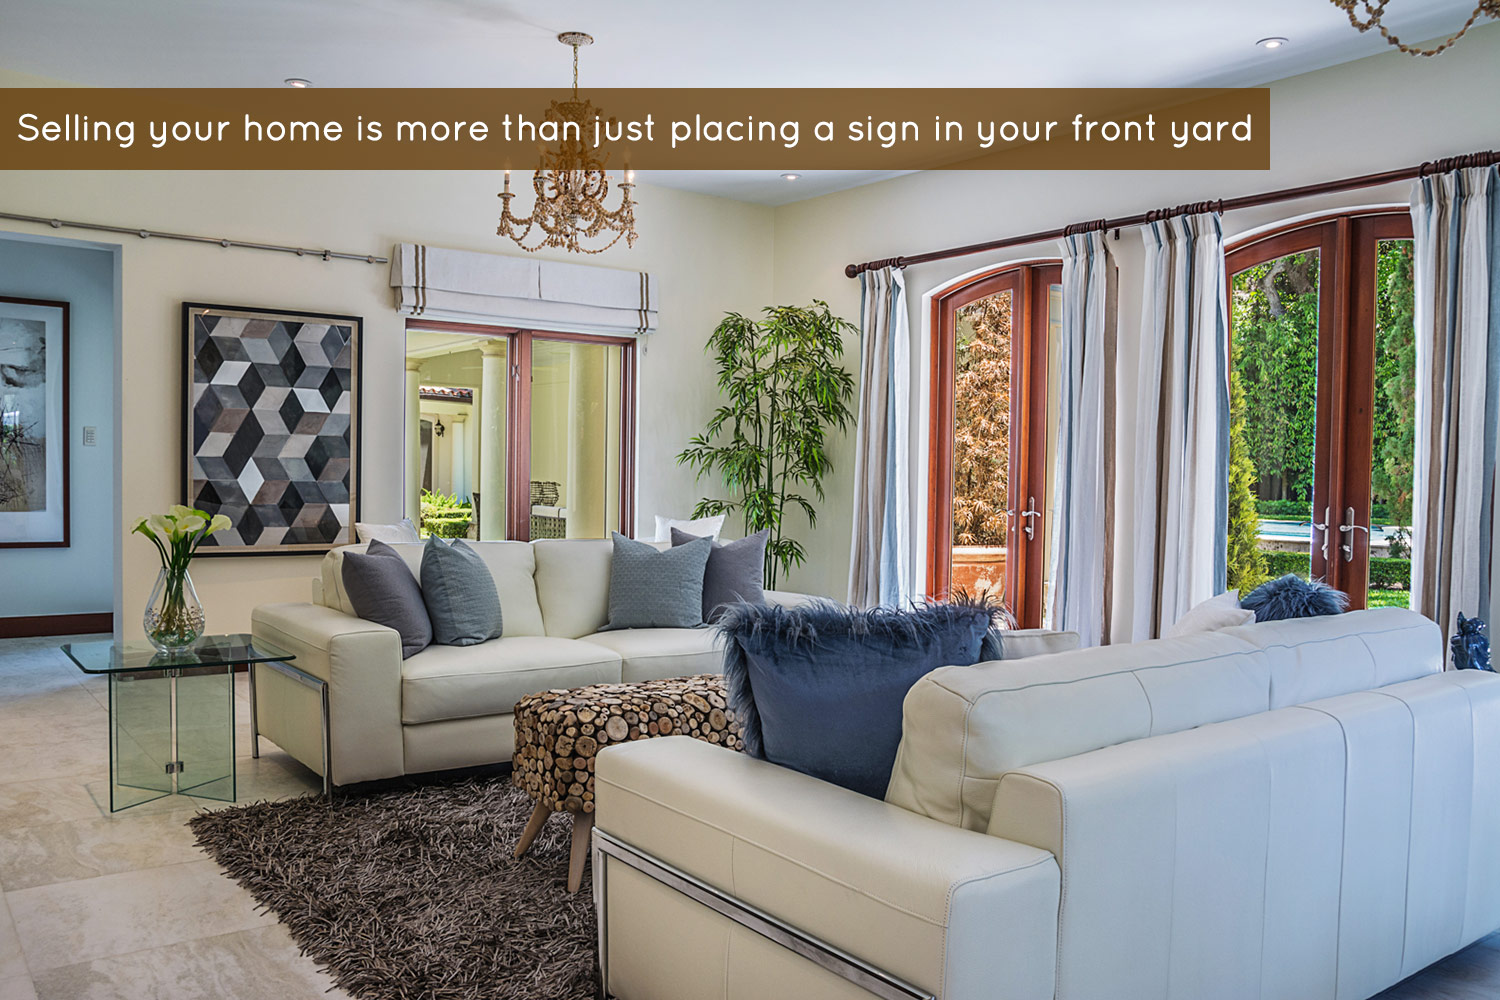 selling-your-home-is-more-than-just-placing-a-sign-in-your-front-yard-designer-interior-decorator-stager-bridget-king.jpg